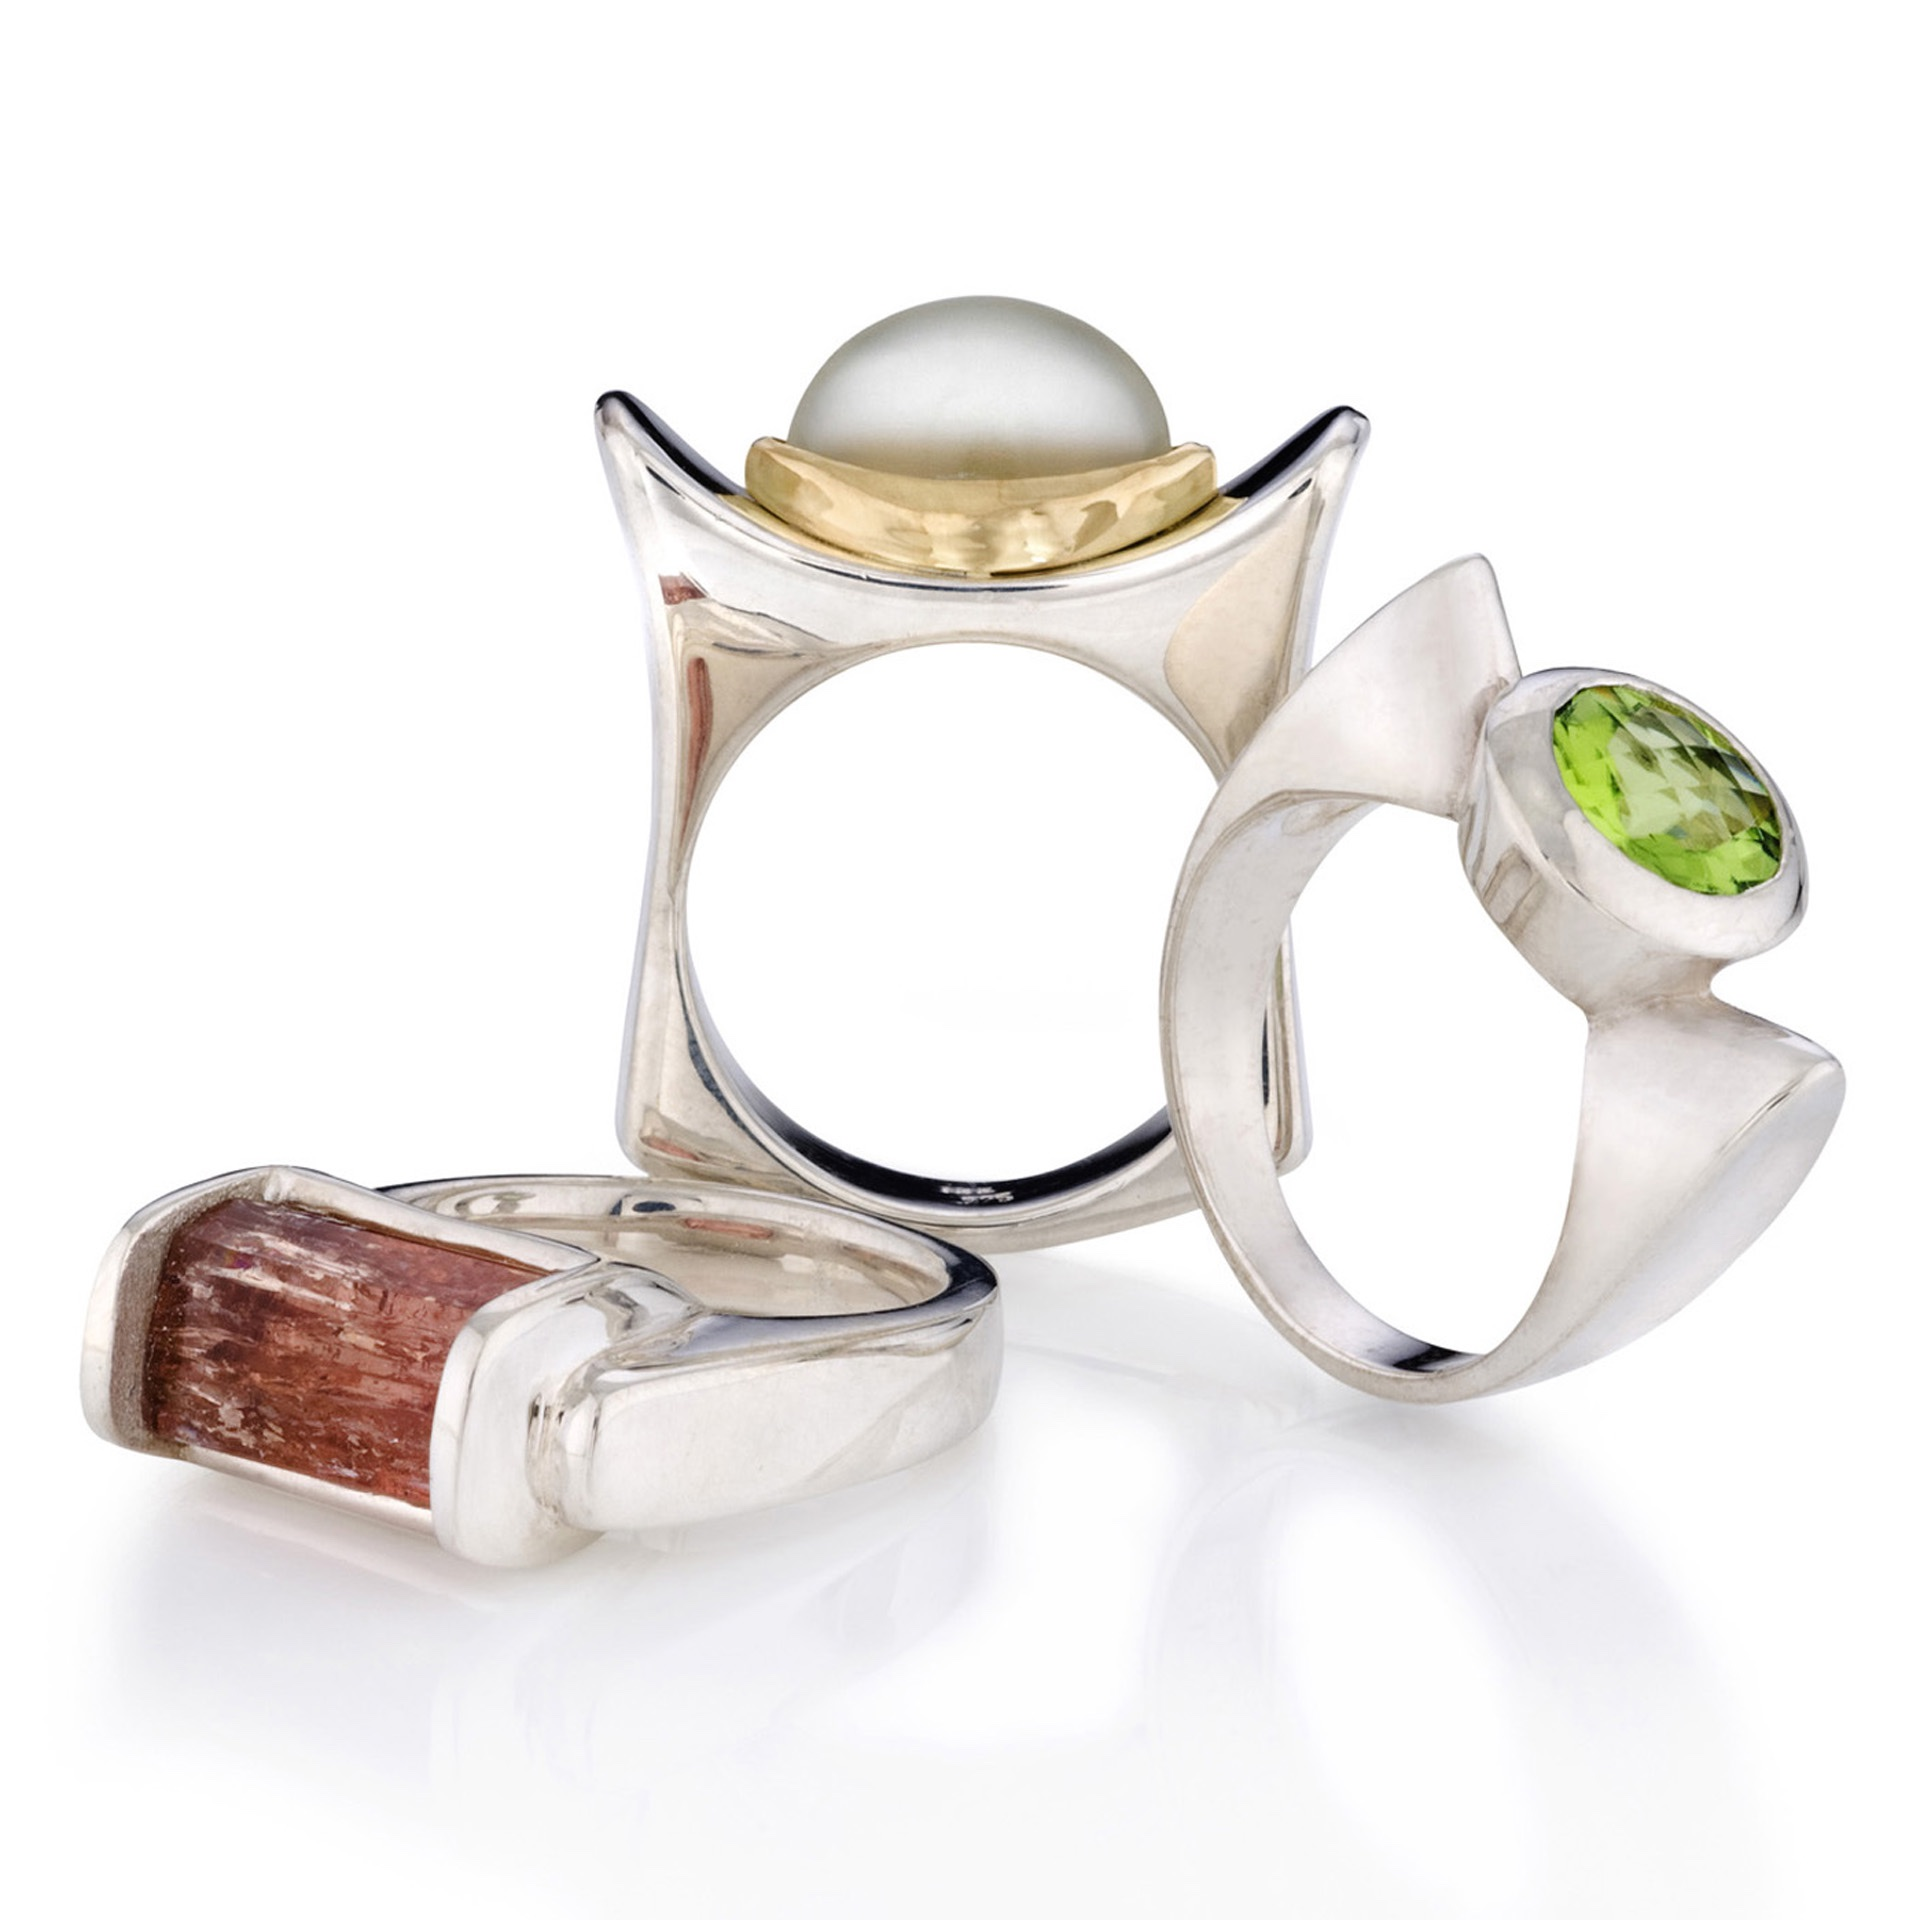 A trio of rings all handcrafted by Kathleen Lynagh Designs, the center ring is a unique statement ring. A solid sterling silver ring showcasing a fin cut moonstone set in an 18kt gold bezel.